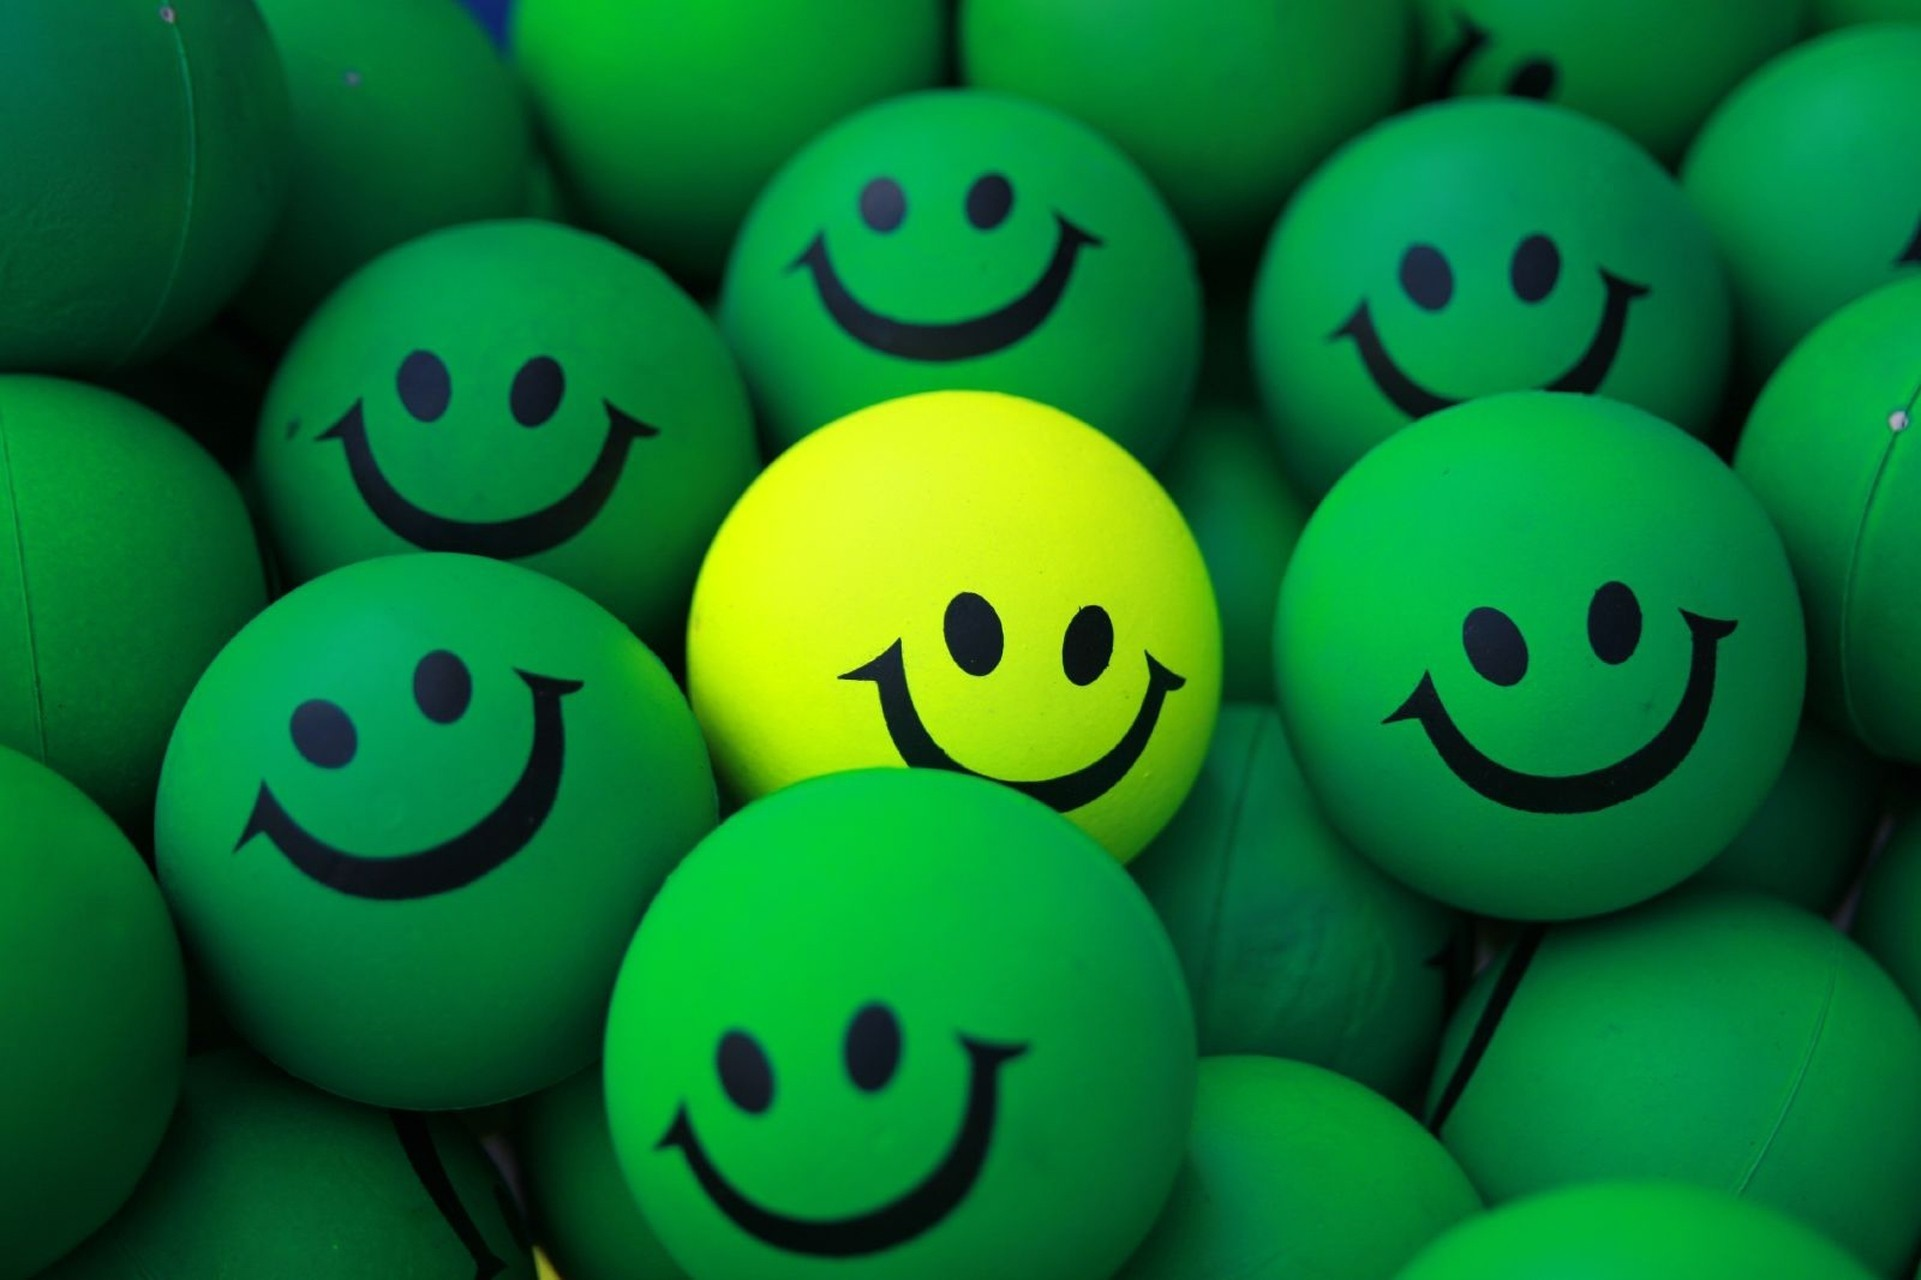 158113 Screensavers and Wallpapers Smile for phone. Download Miscellanea, Miscellaneous, Smile, Balls, Smilies, Smiles pictures for free